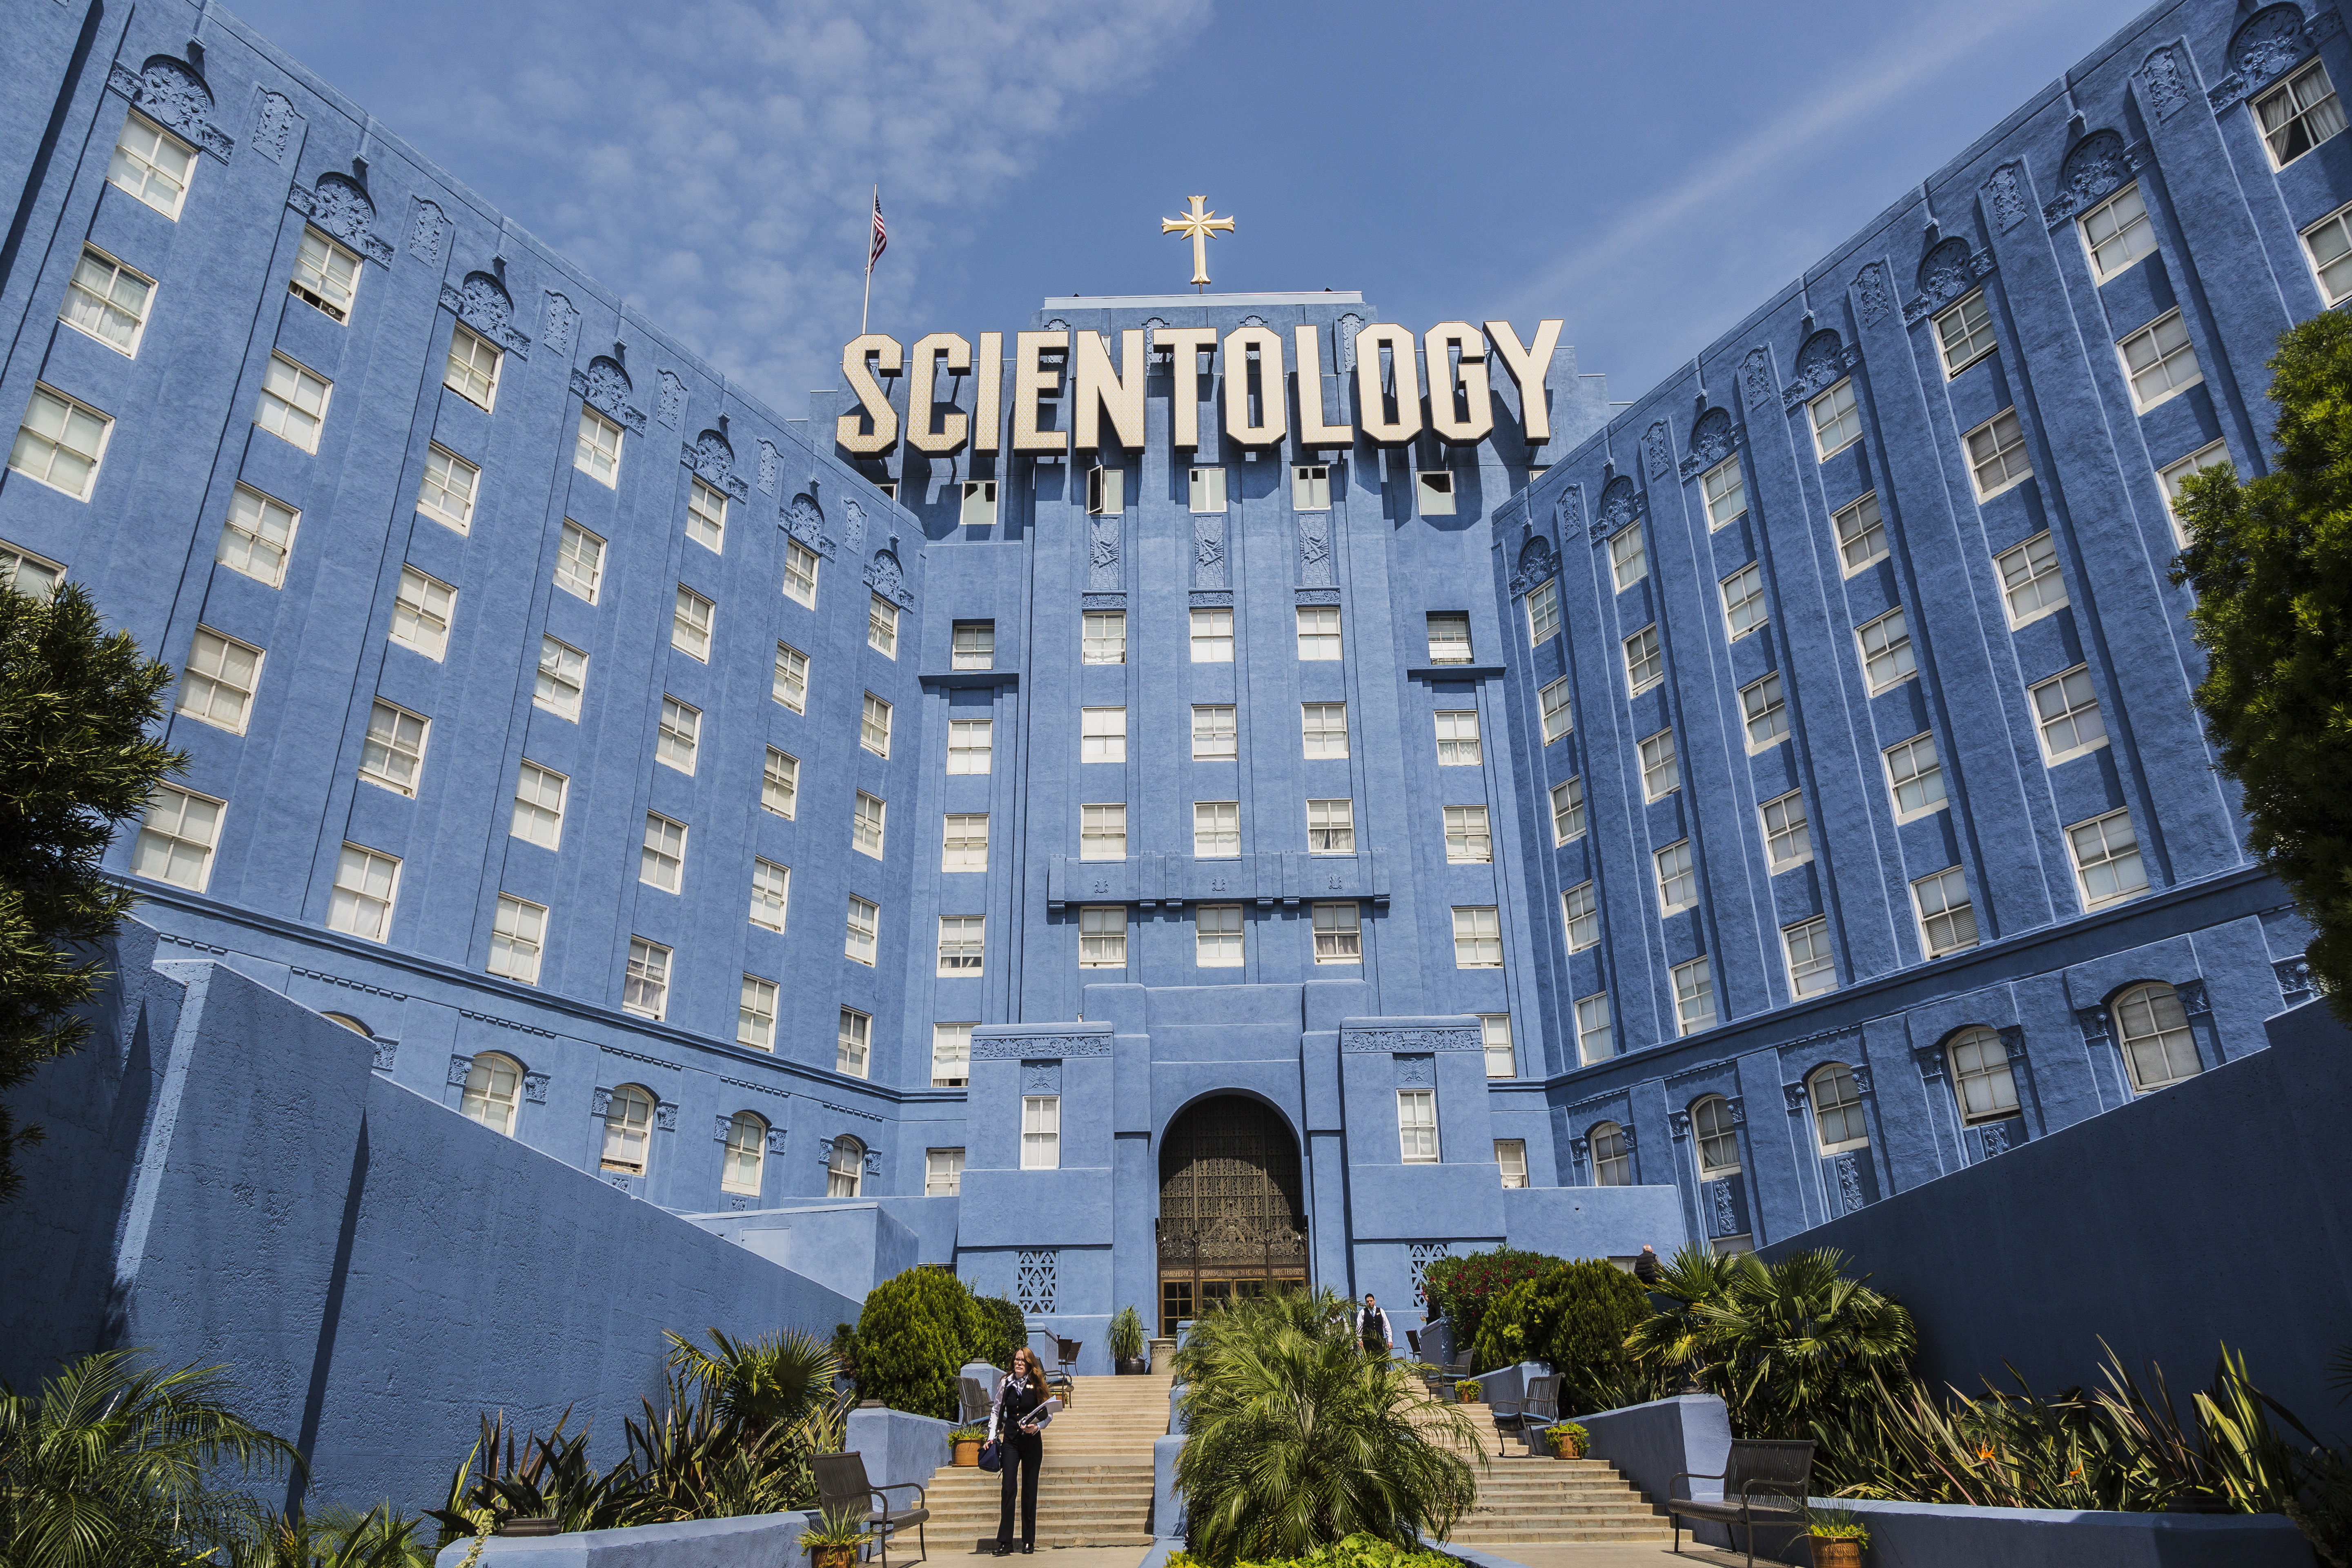 Church of Scientology Building on 4810 Sunset Blvd. in Los Angeles.